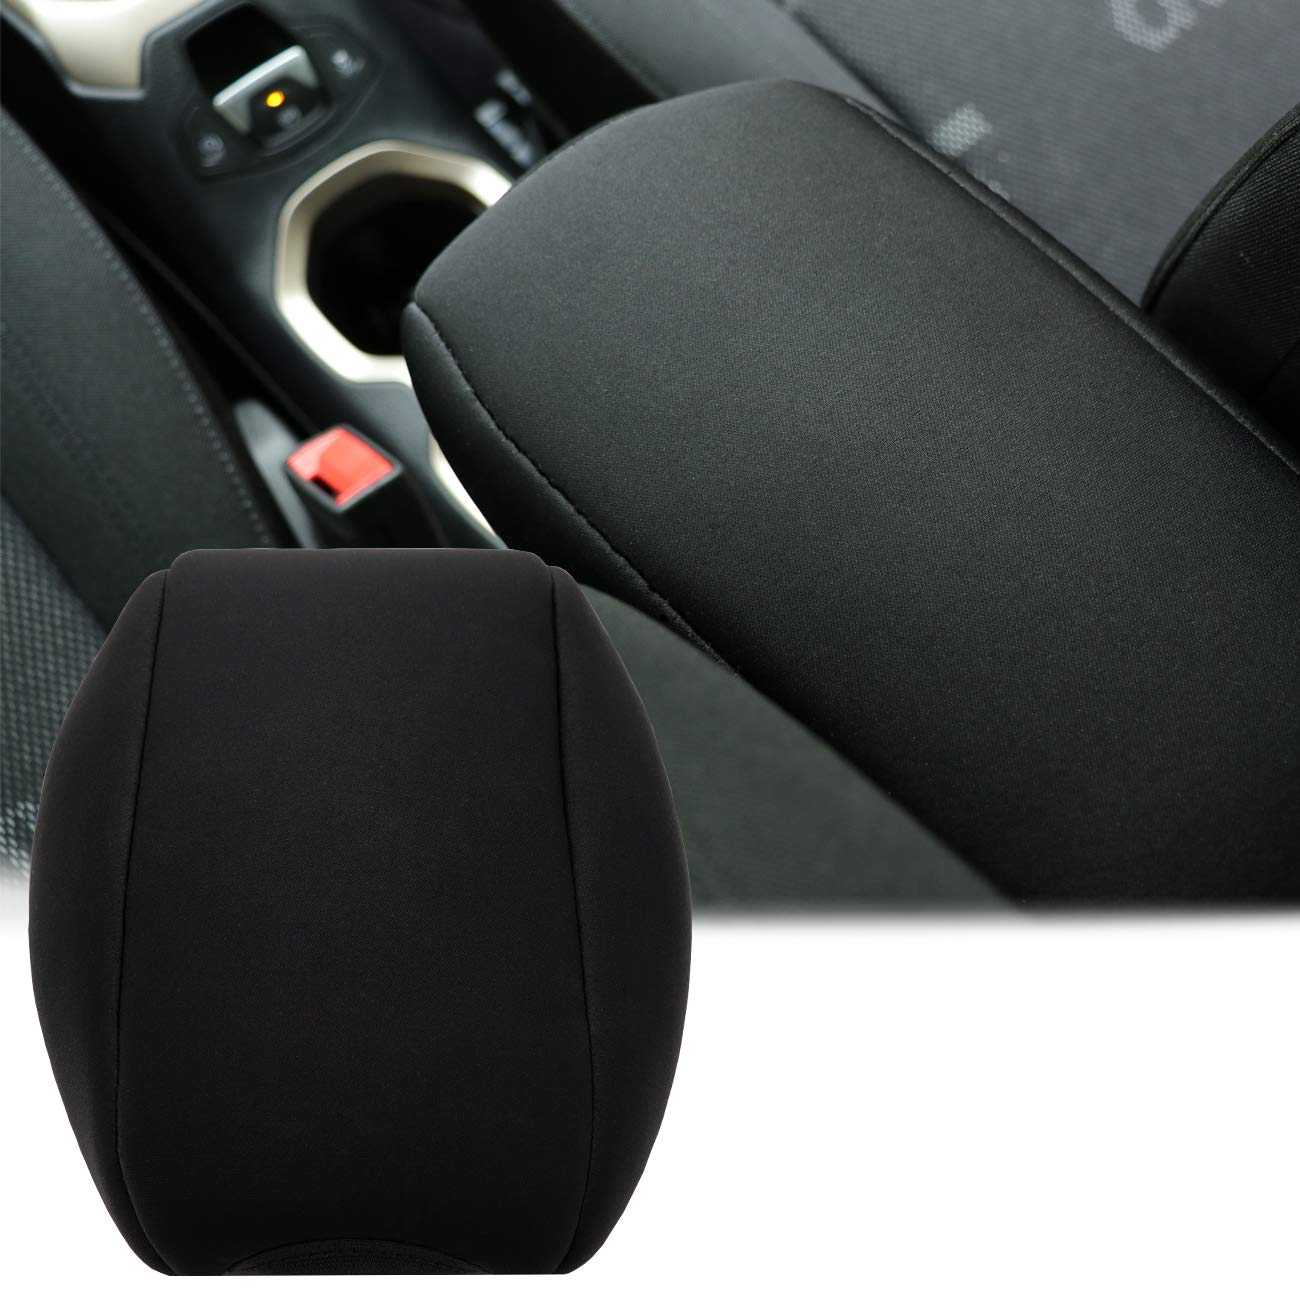 Yoursme Neoprene Center Console Armrest Pad Cover Protector Cushion Fit for Jeep Renegade 2015 2016 2017 (BLACK DOG PAW)